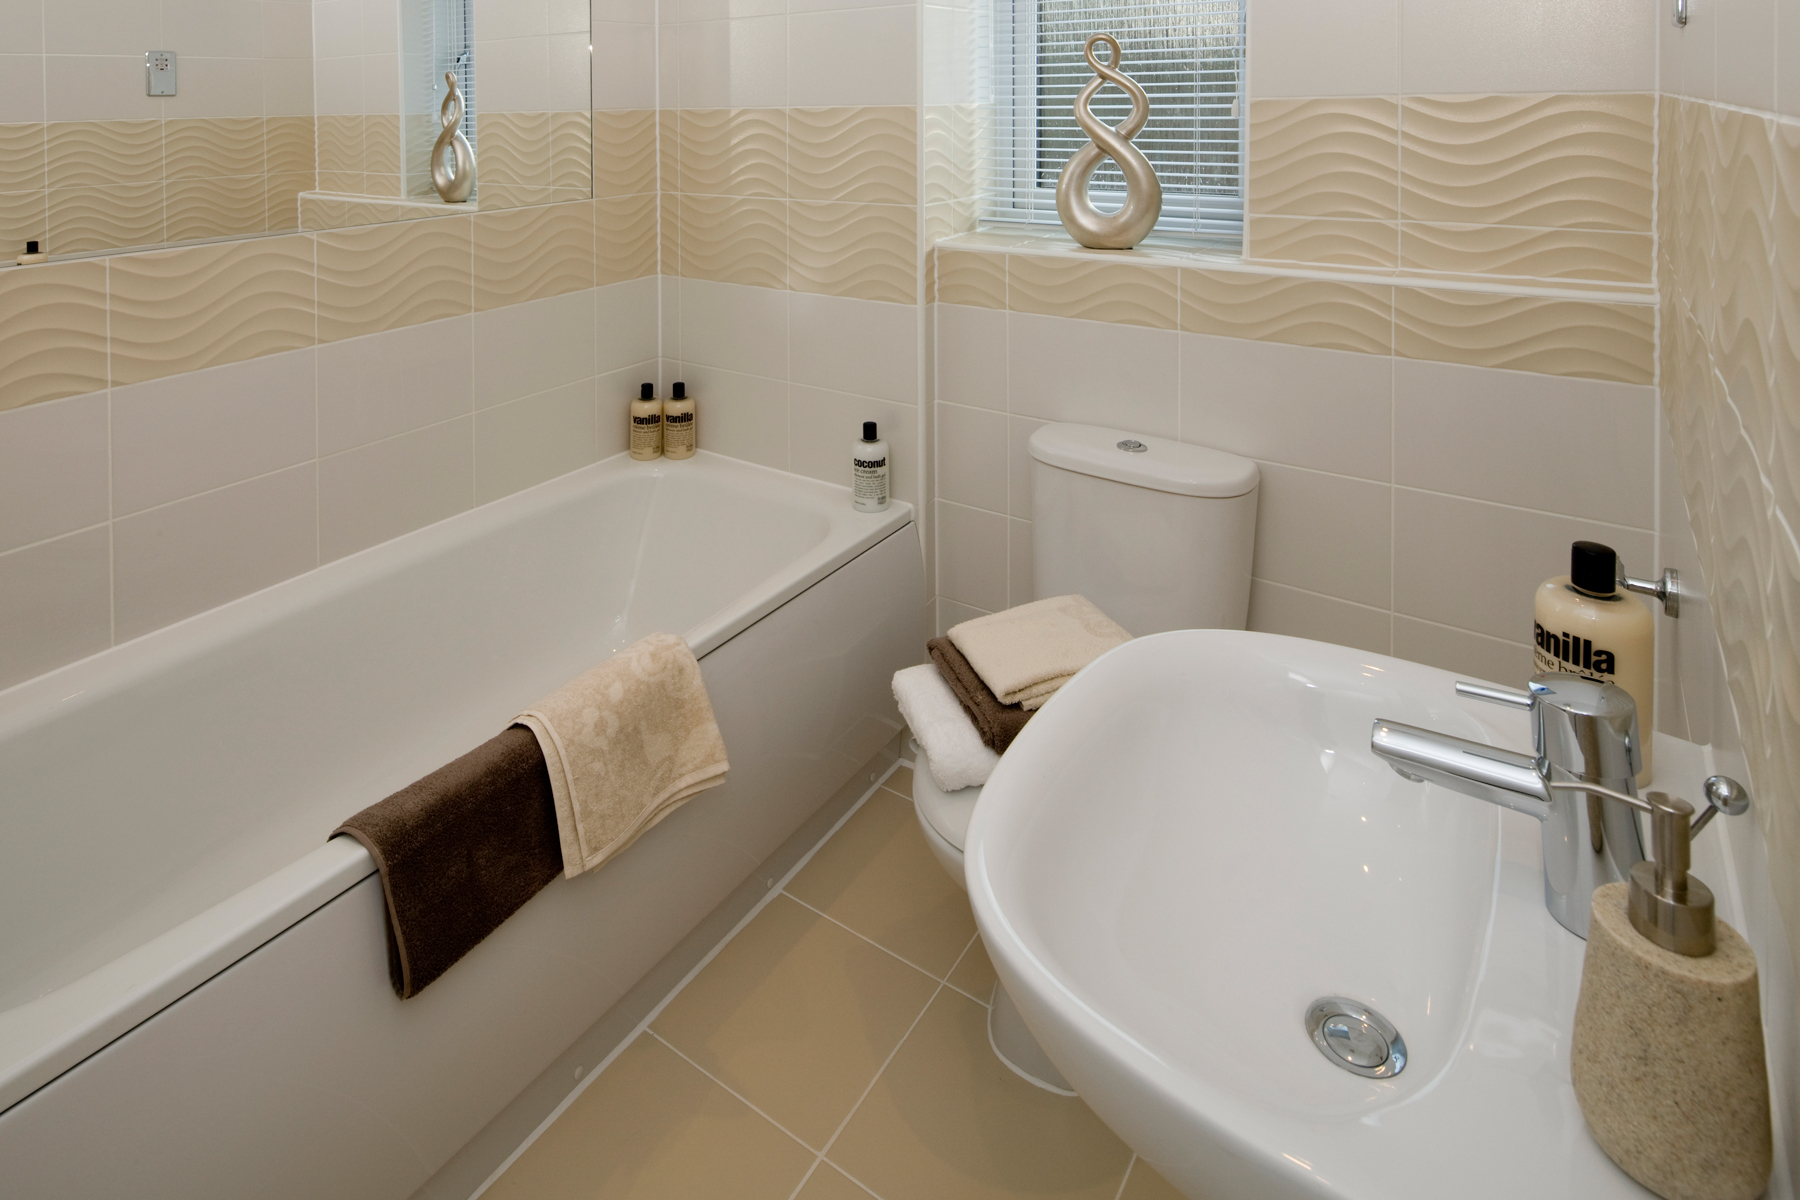 A Typical Taylor Wimpey Bathroom_1